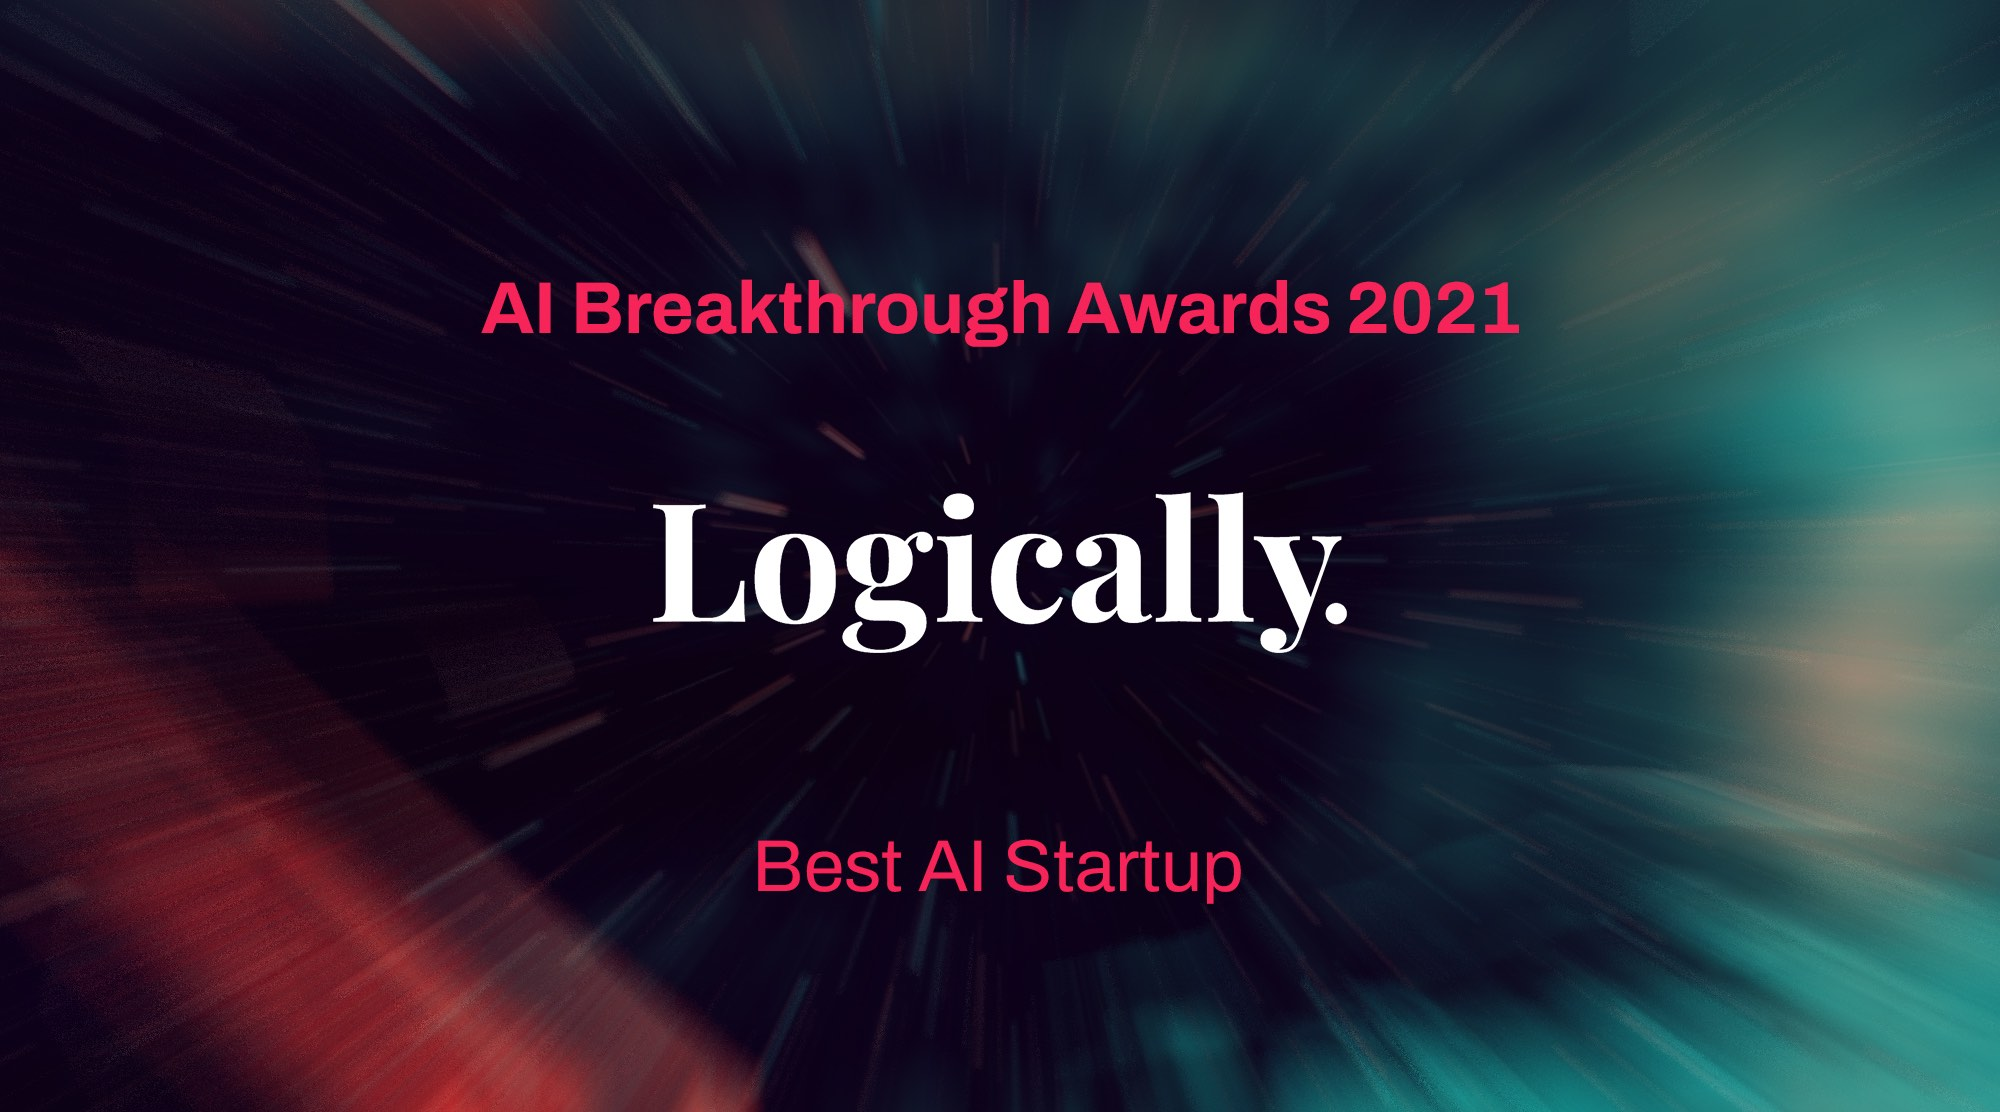 Logically awarded Best AI Startup at the 2021 AI Breakthrough Awards